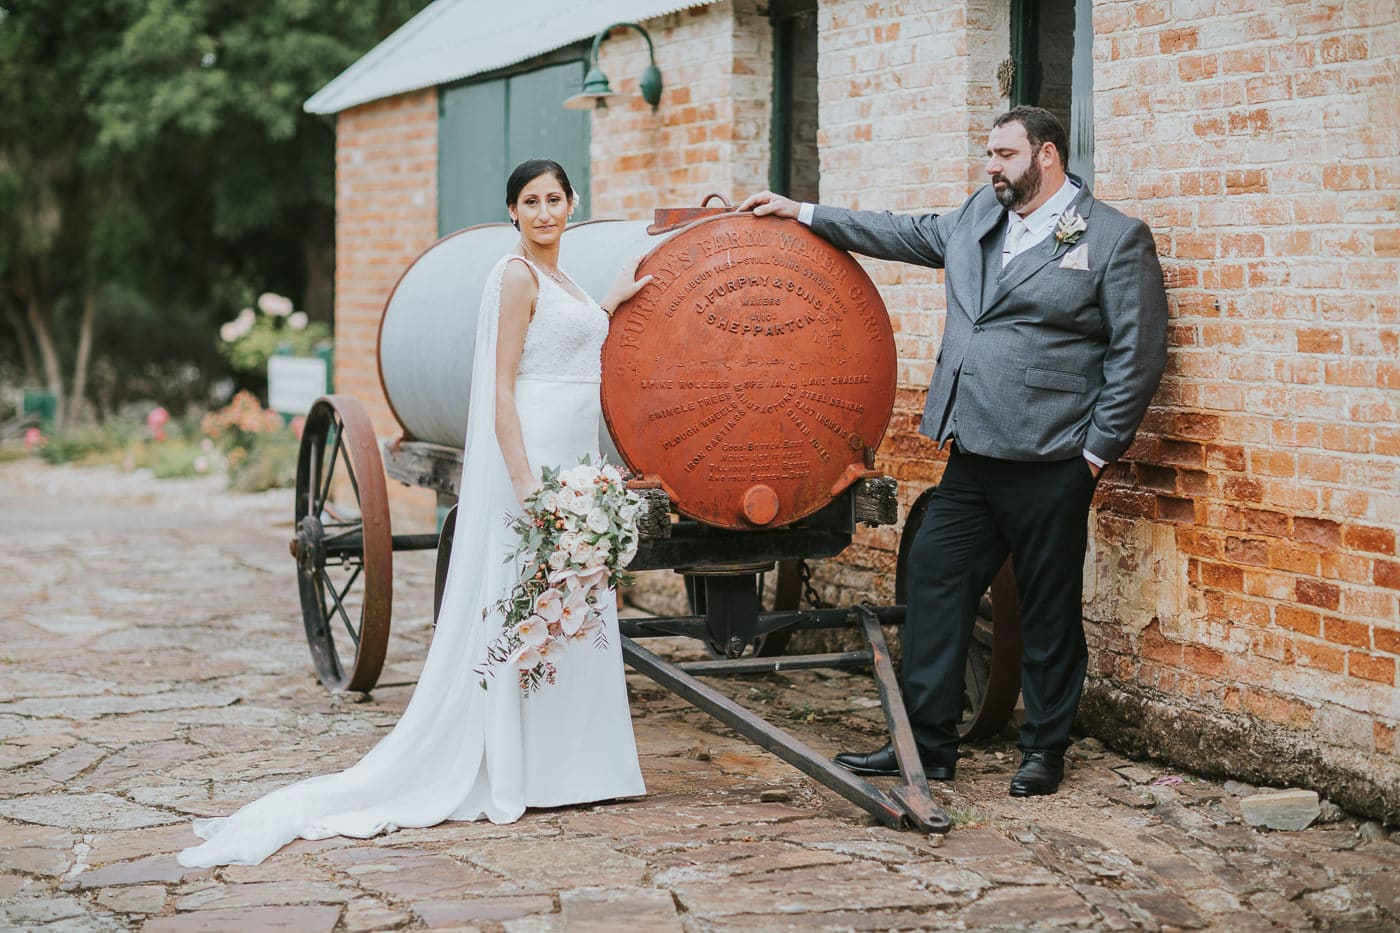 Country Victoria Wedding Photos - Wedding phootgraphy at Flowerdale Estate - Furphy Cart with Bride and Groom